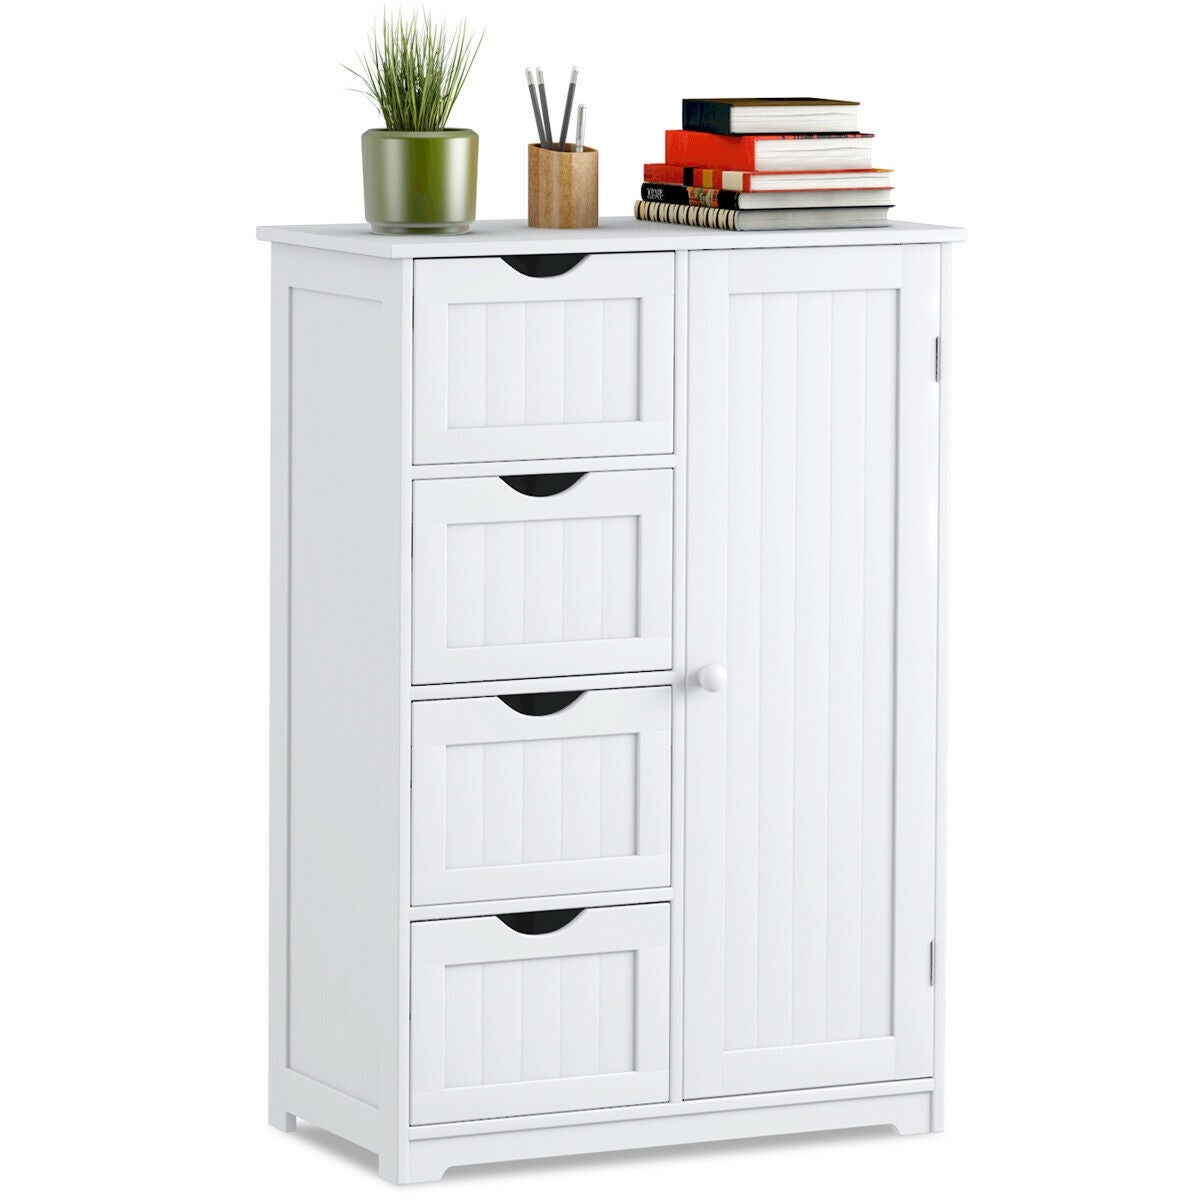 Costway Wooden 4 Drawer Bathroom Cabinet Storage Cupboard 2 Shelves Free Standing White within sizing 1200 X 1200